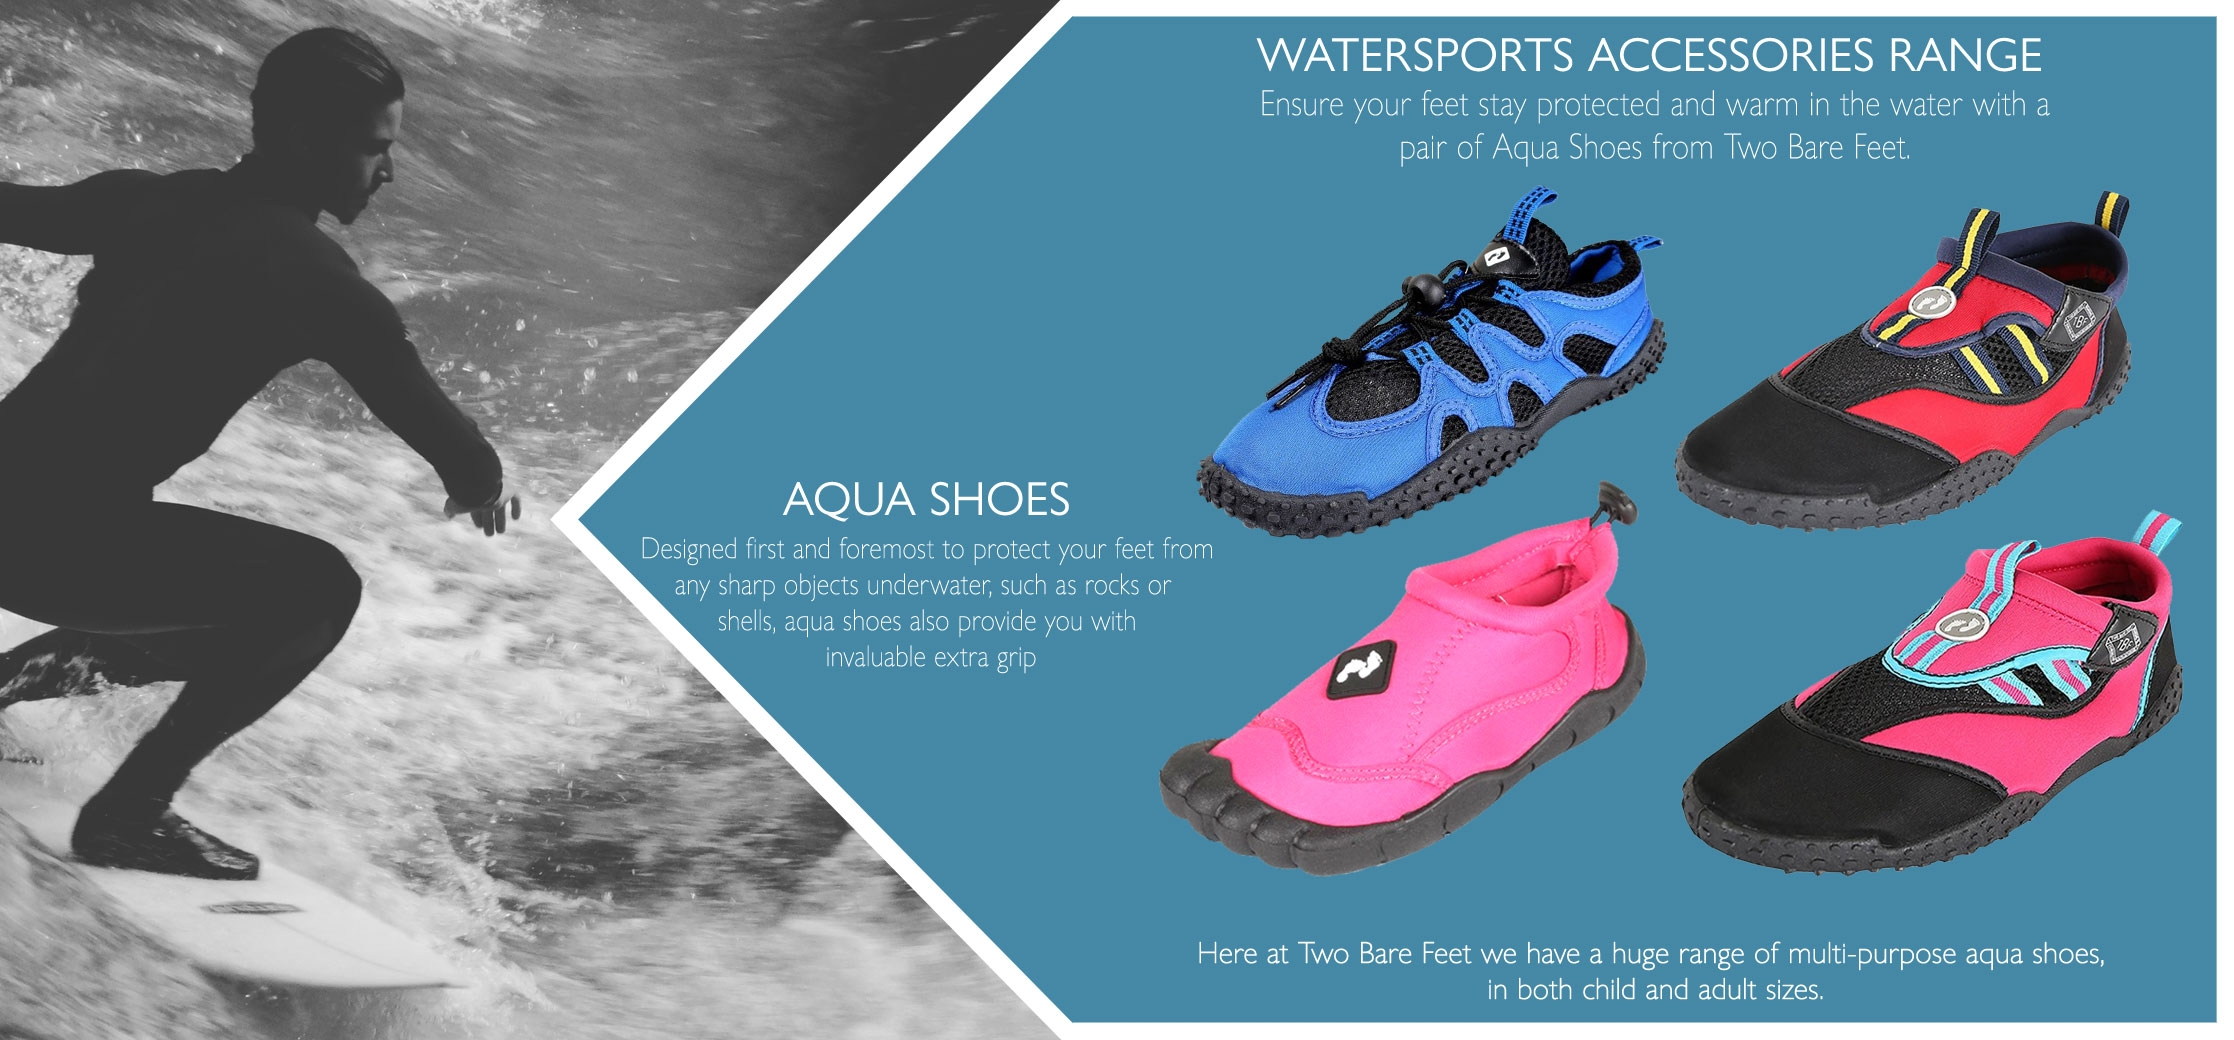 Aqua shoes styles